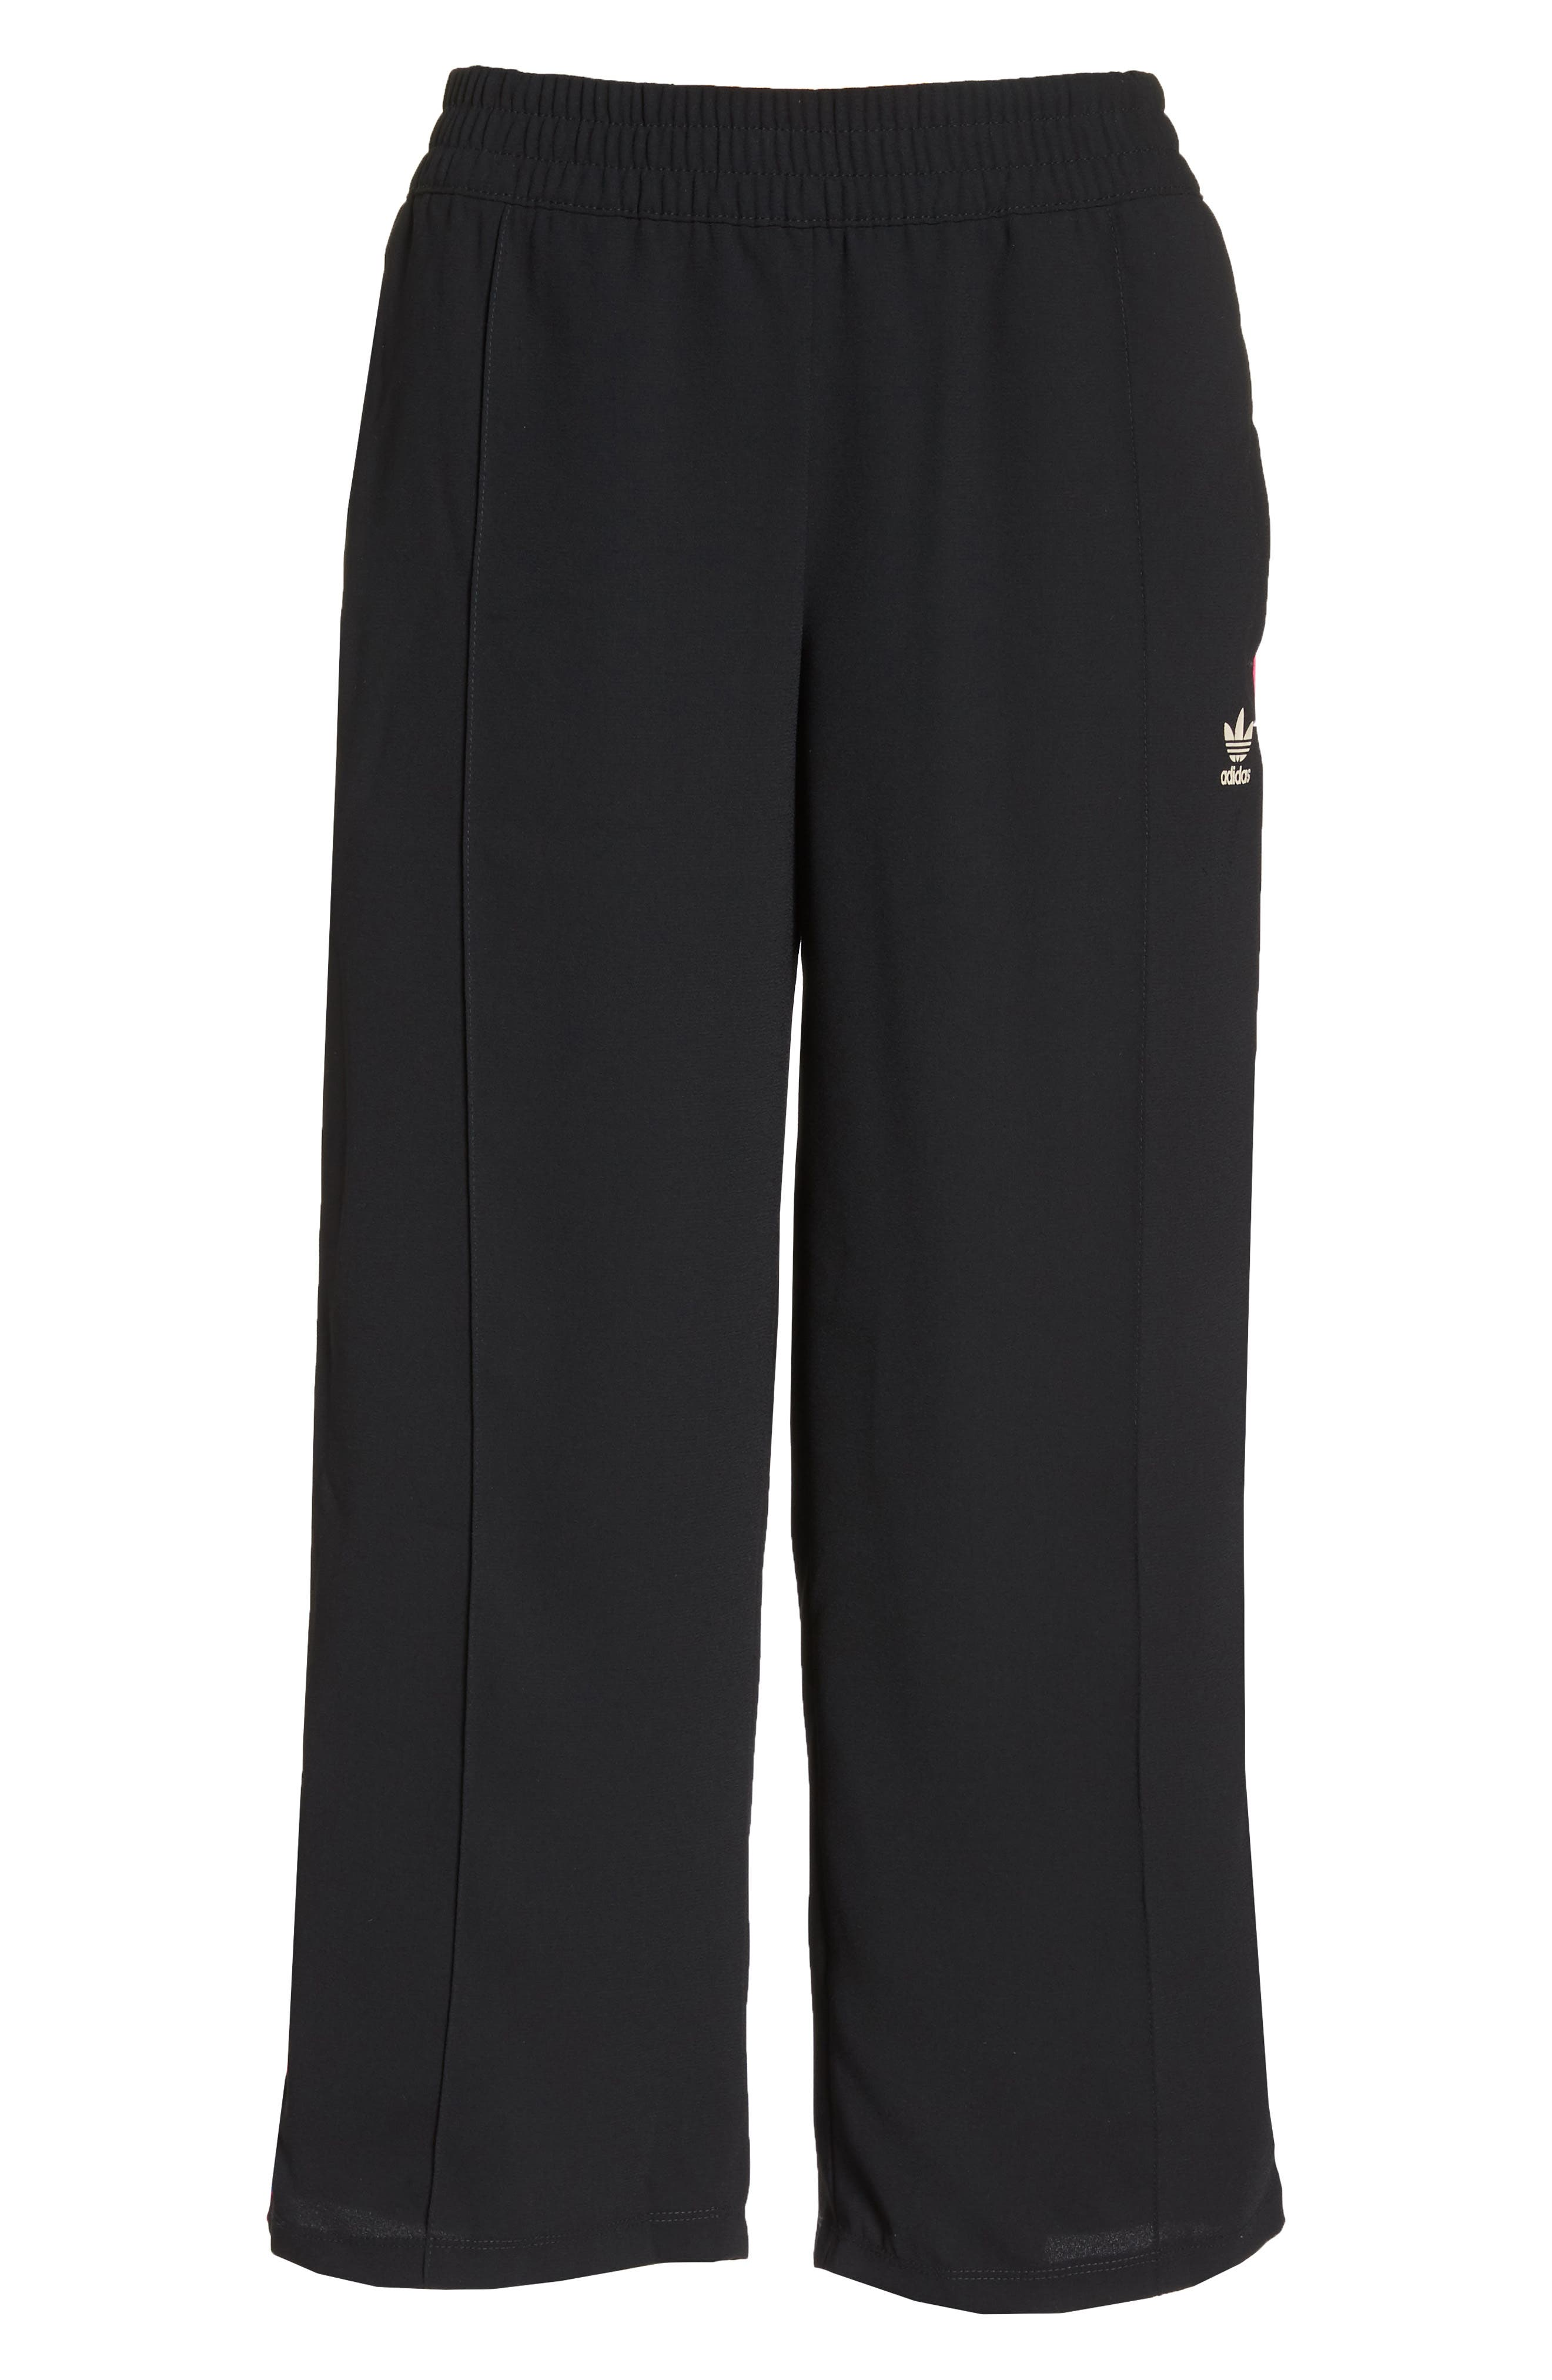 adidas Crop Track Pants,                             Alternate thumbnail 7, color,                             001